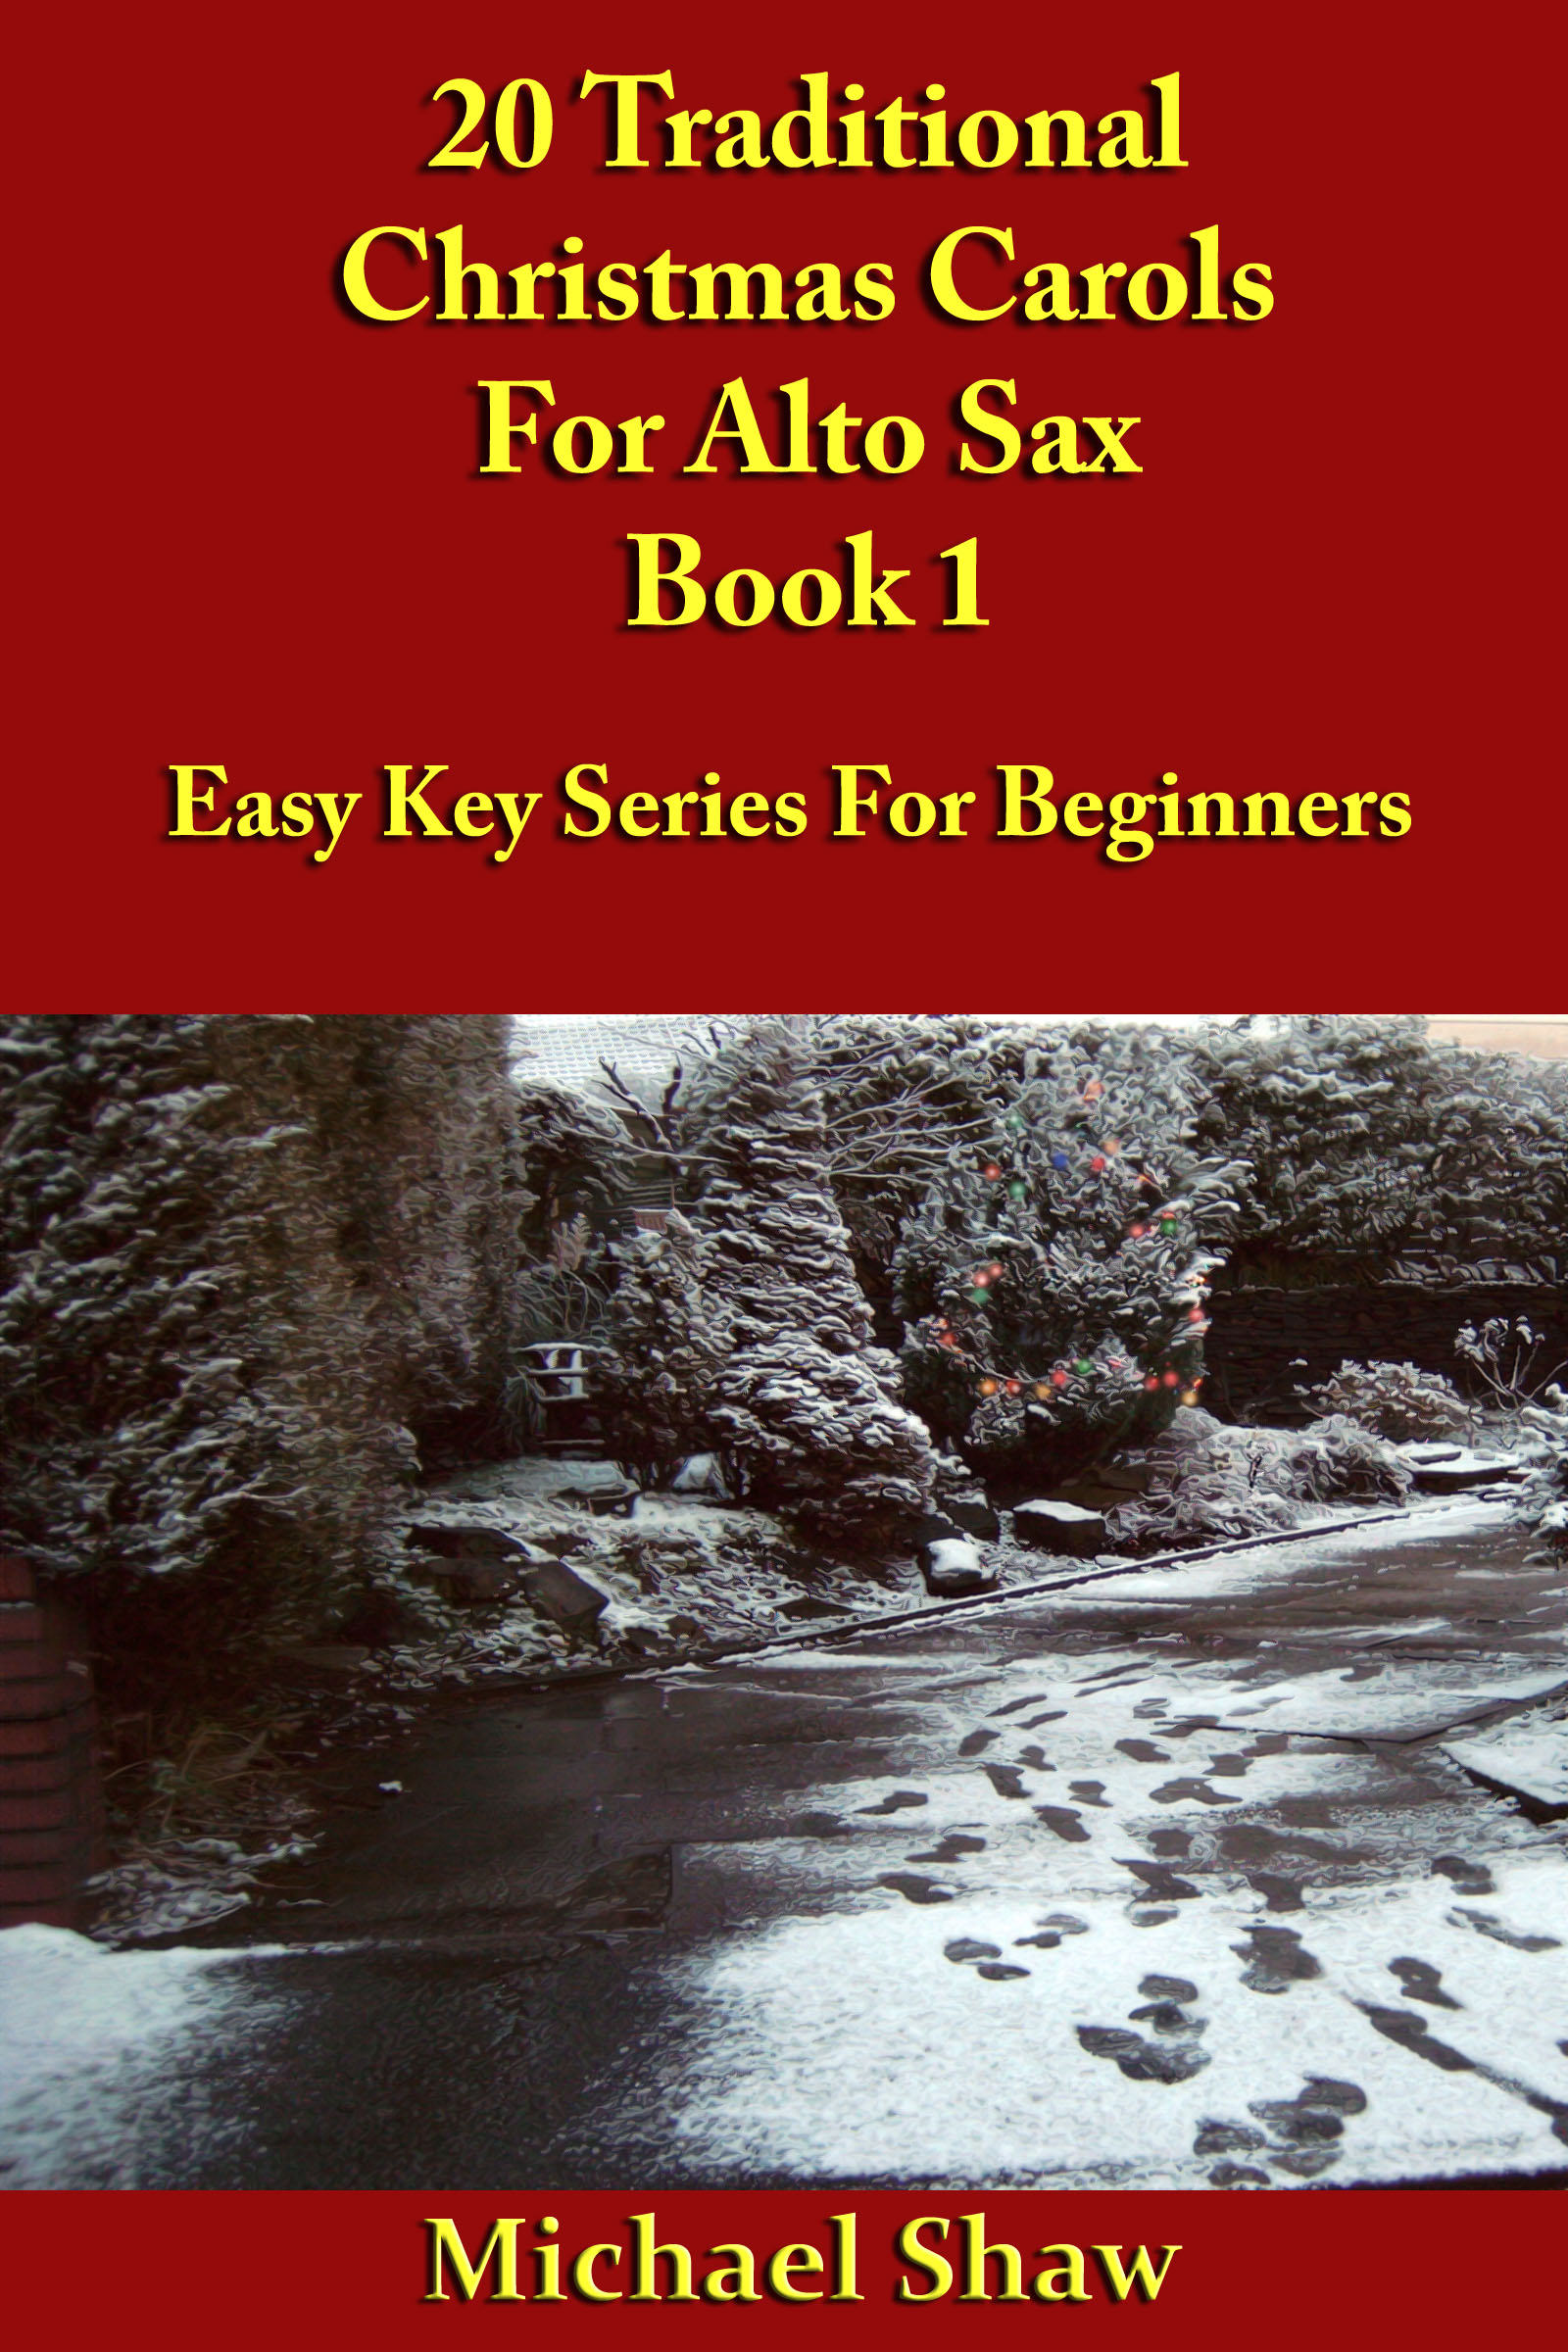 Traditional Christmas Music.20 Traditional Christmas Carols For Alto Sax Book 1 An Ebook By Michael Shaw